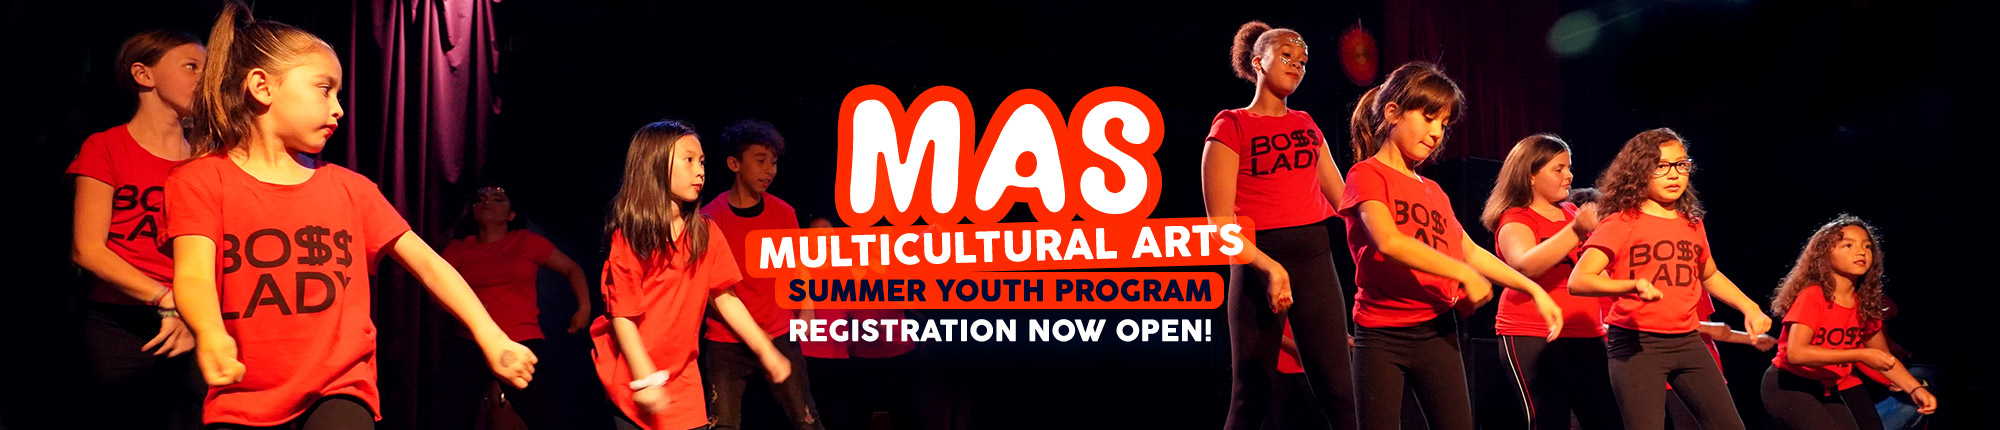 MAS: Multicultural Arts Summer Youth Program Registration Now Open!